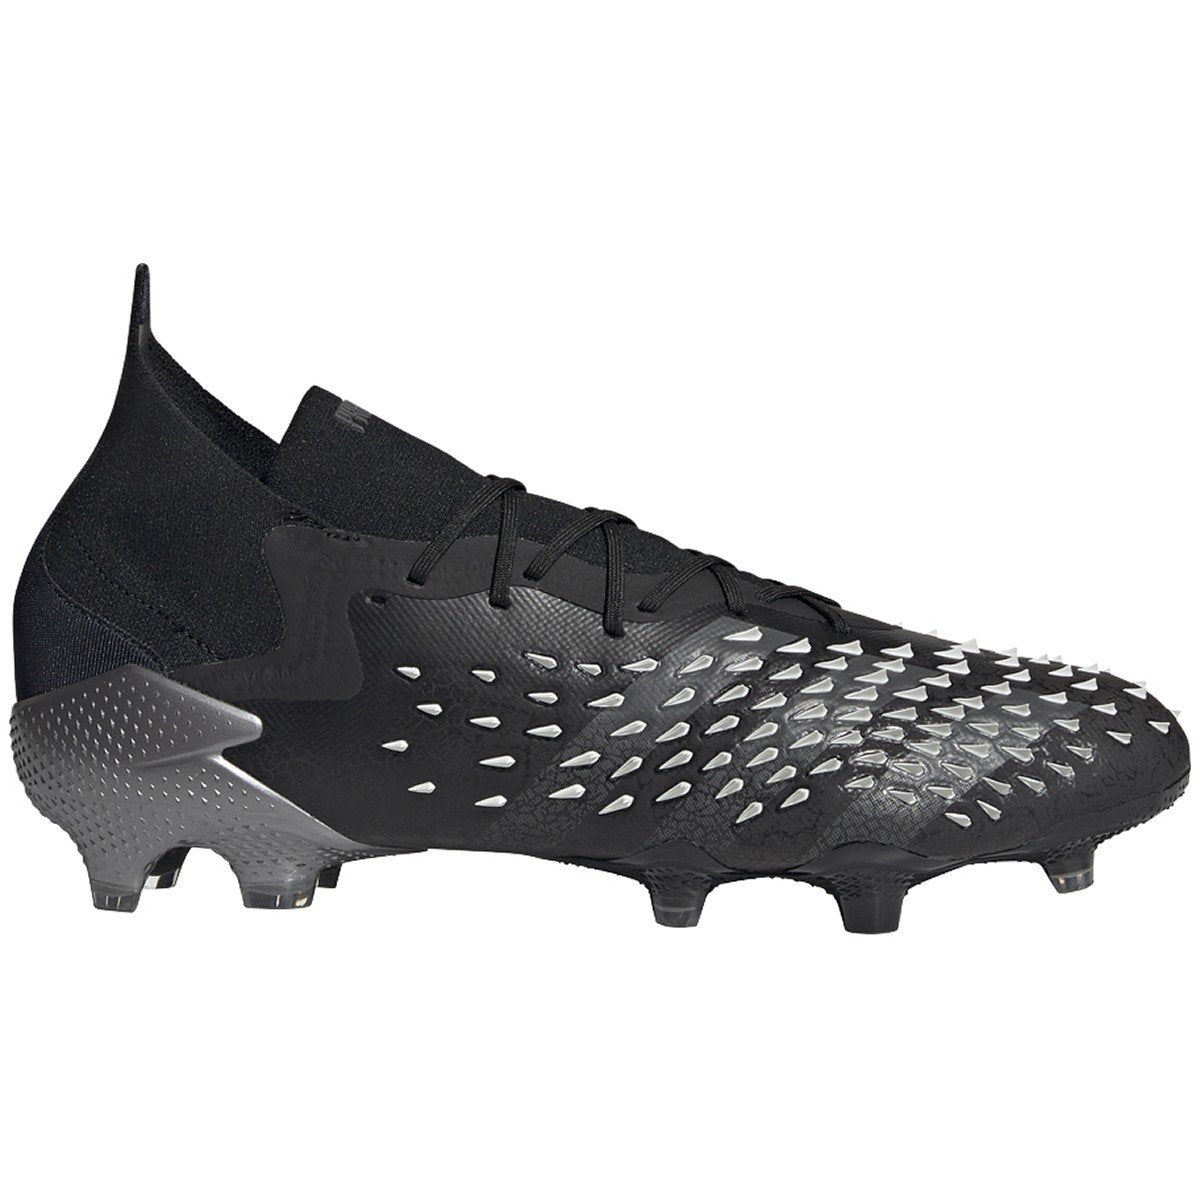 adidas Predator Freak.1 FG Men's Soccer Cleats | FY1021 Soccer Shoes adidas 8.5 Core Black-grey-white